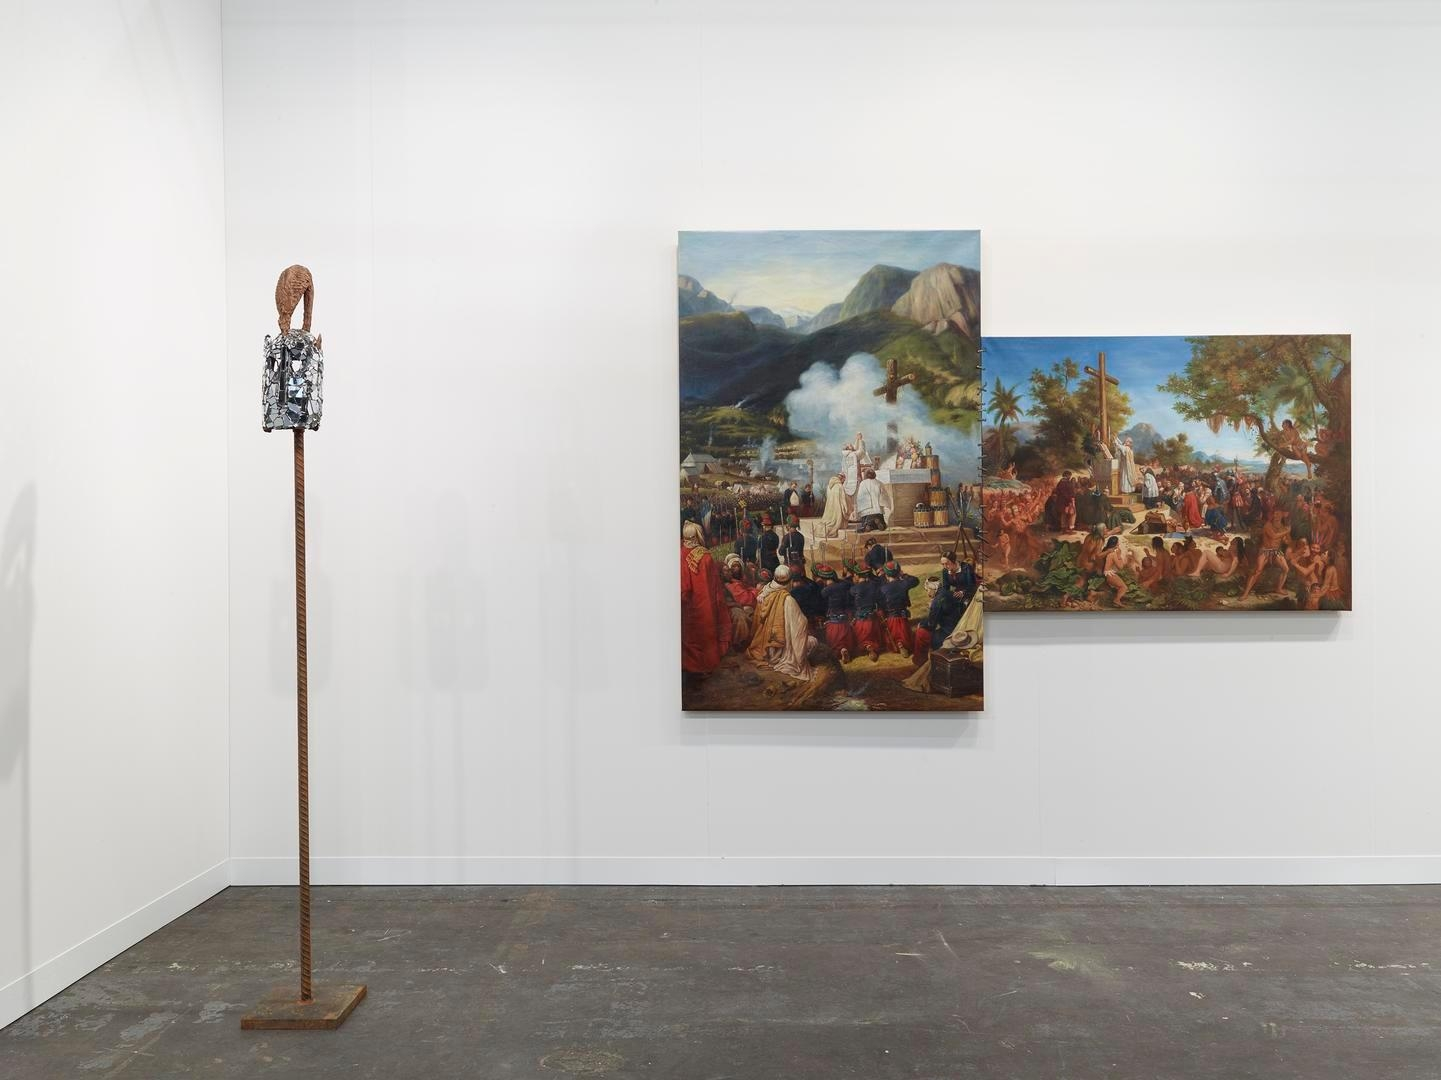 Installation view, Booth 1000, The Armory Show 2015